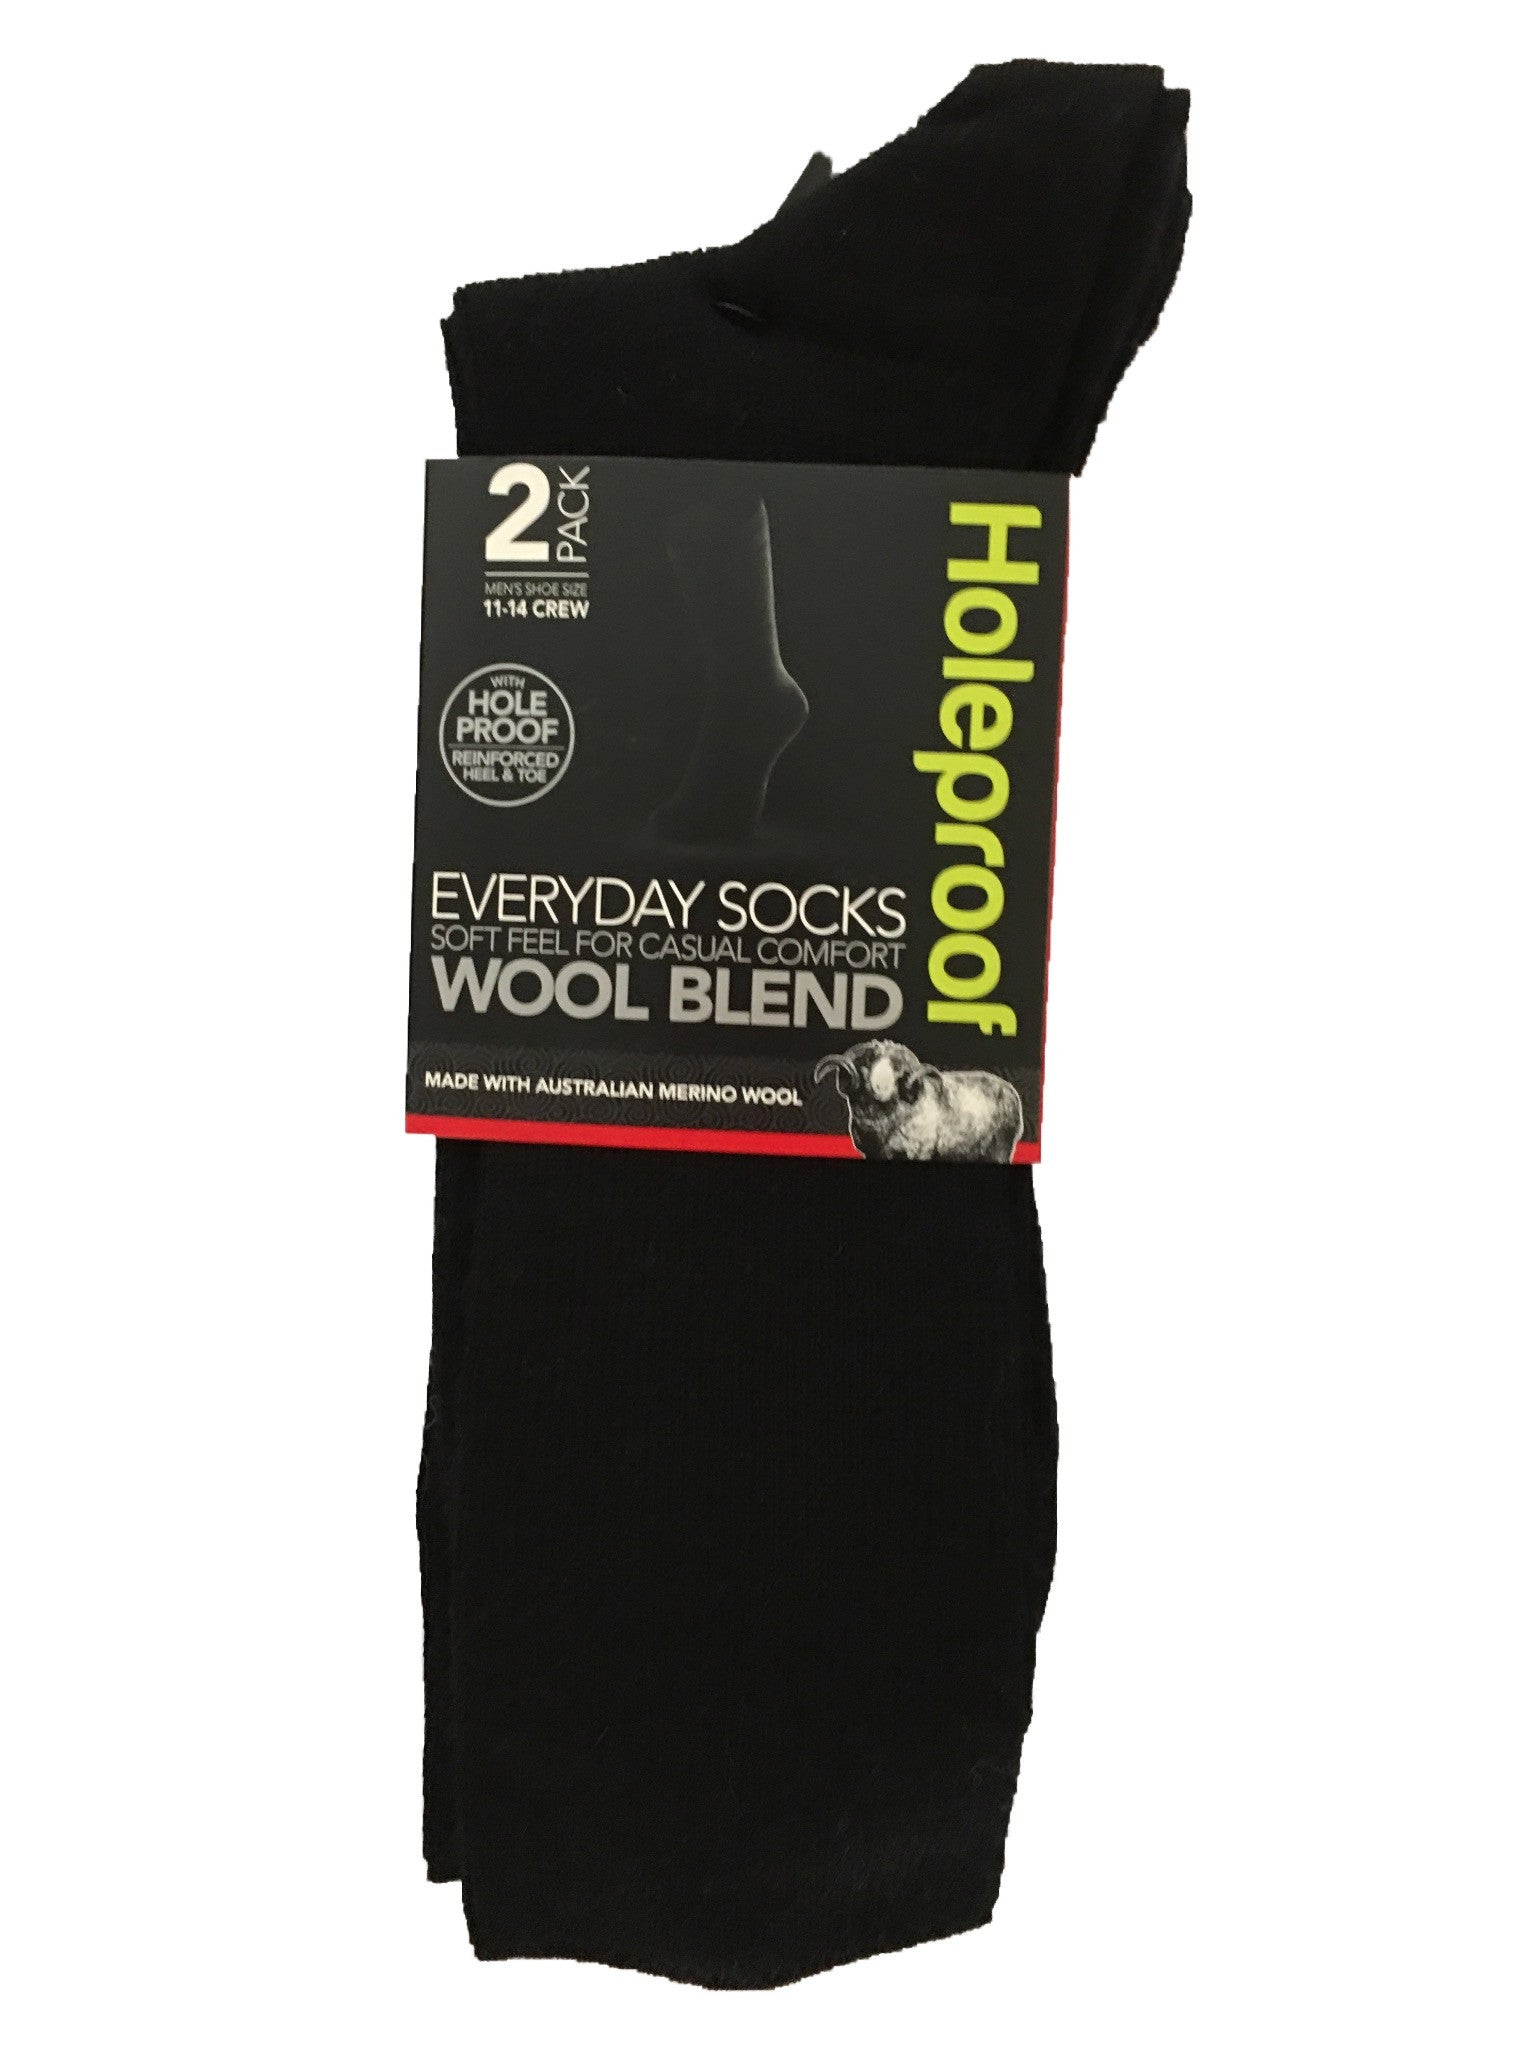 Holeproof Everyday Business Wool Blend 2 Pack